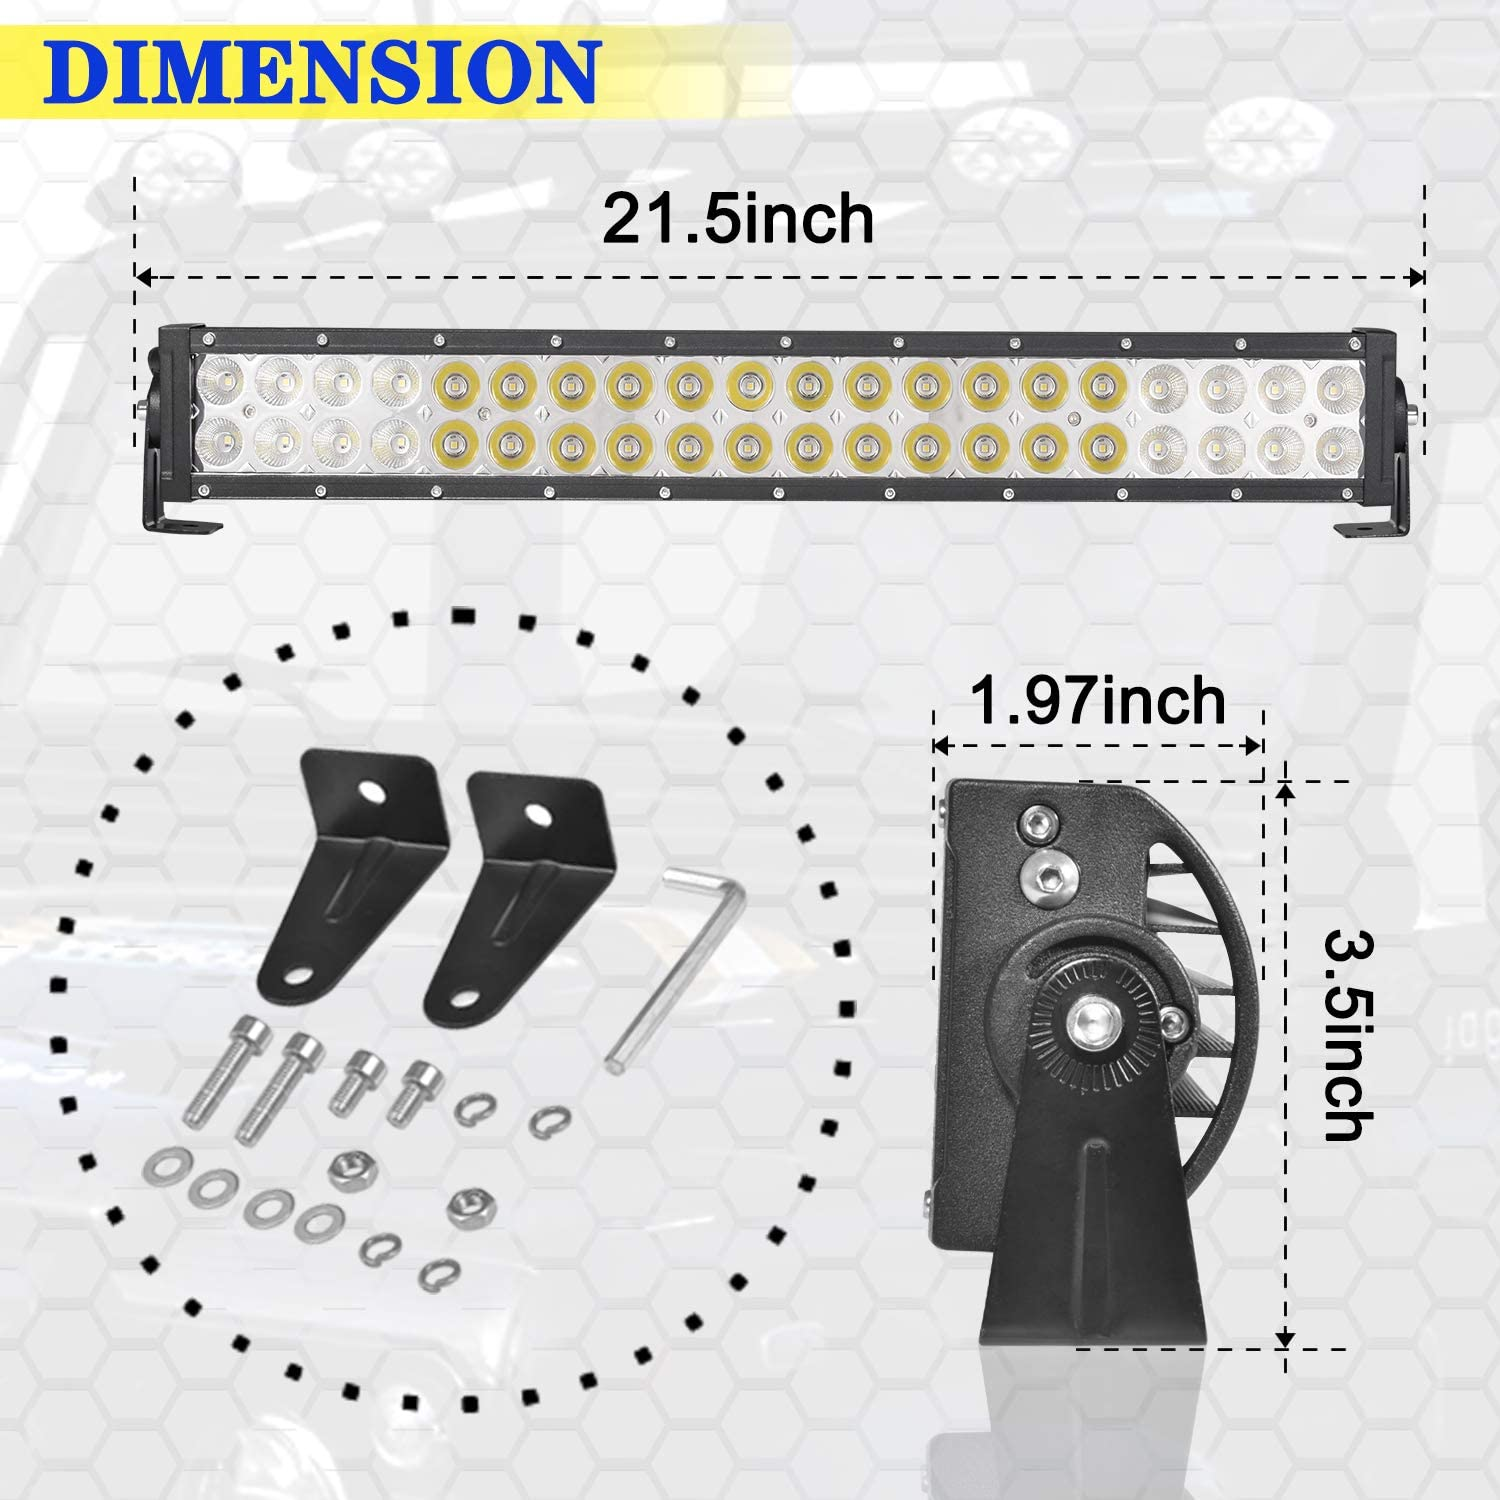 LMGAO 22 inch led Light bar 120W Combo Dual Row Driving Light Offroad led bar Work Light Car Tractor Truck 4x4 SUV ATV 12V 24V